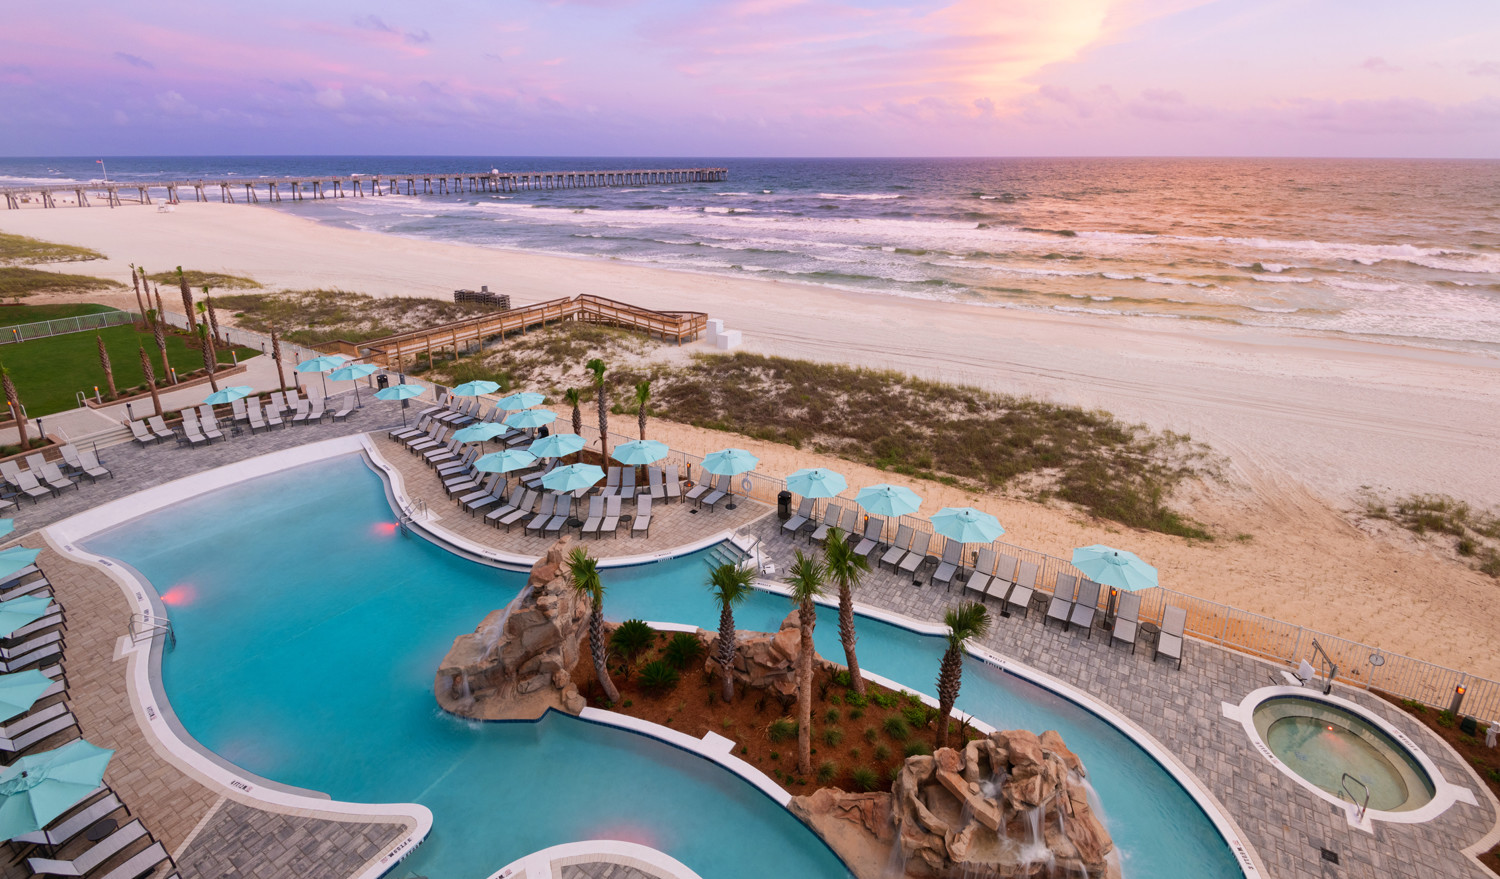 news-main-springhill-suites-by-marriott-celebrates-500th-milestone-opening-with-debut-on-amelia-island.1621941056.jpg